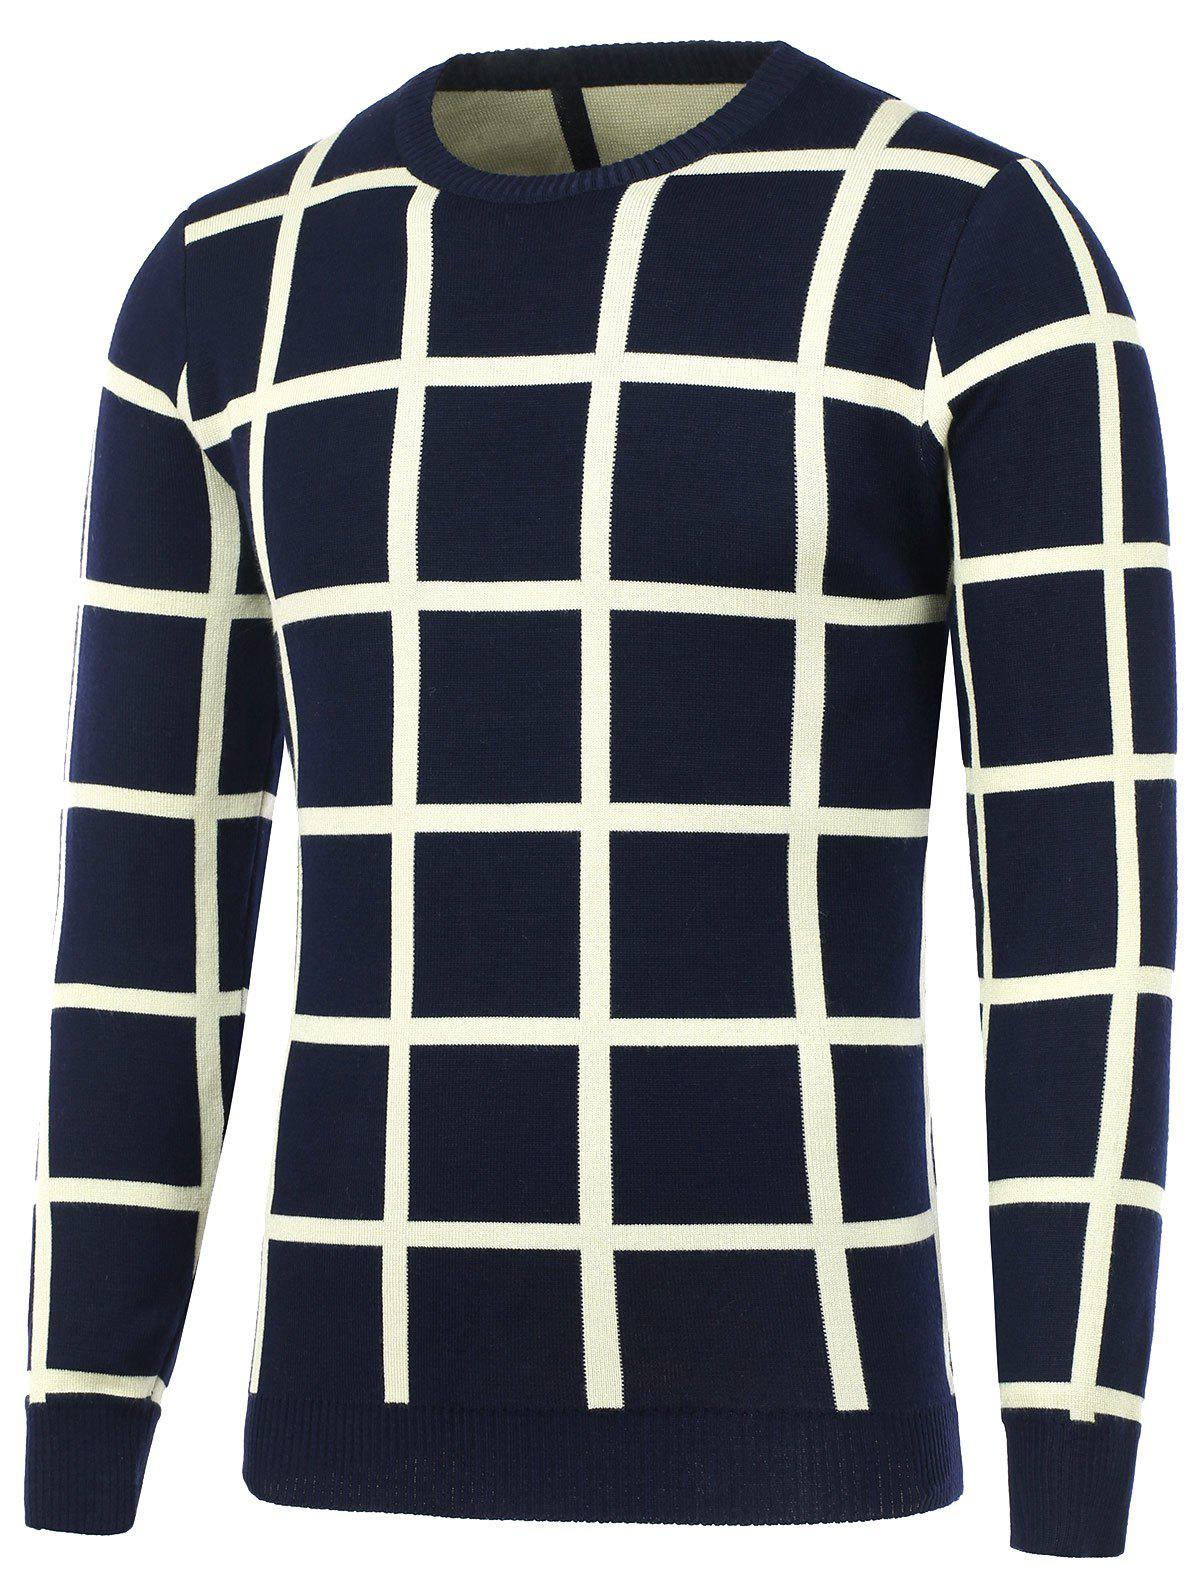 Crew Neck Knitted Grid Sweater - DEEP BLUE L